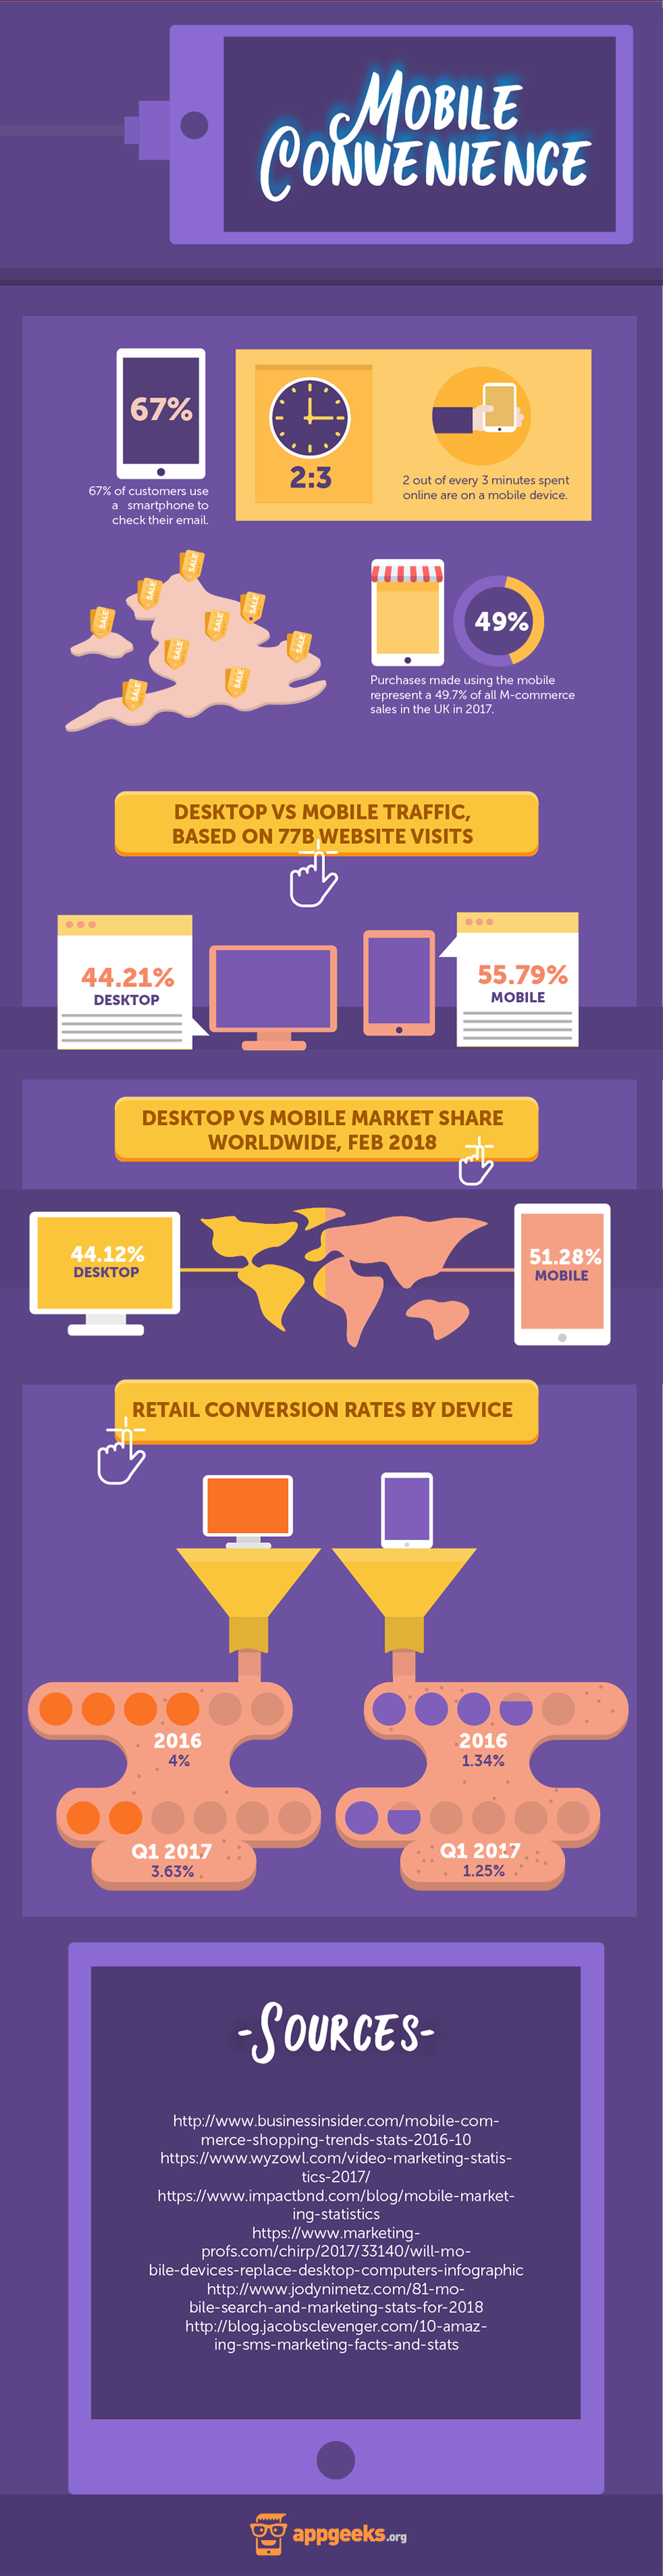 Mobile Convenience Infographic